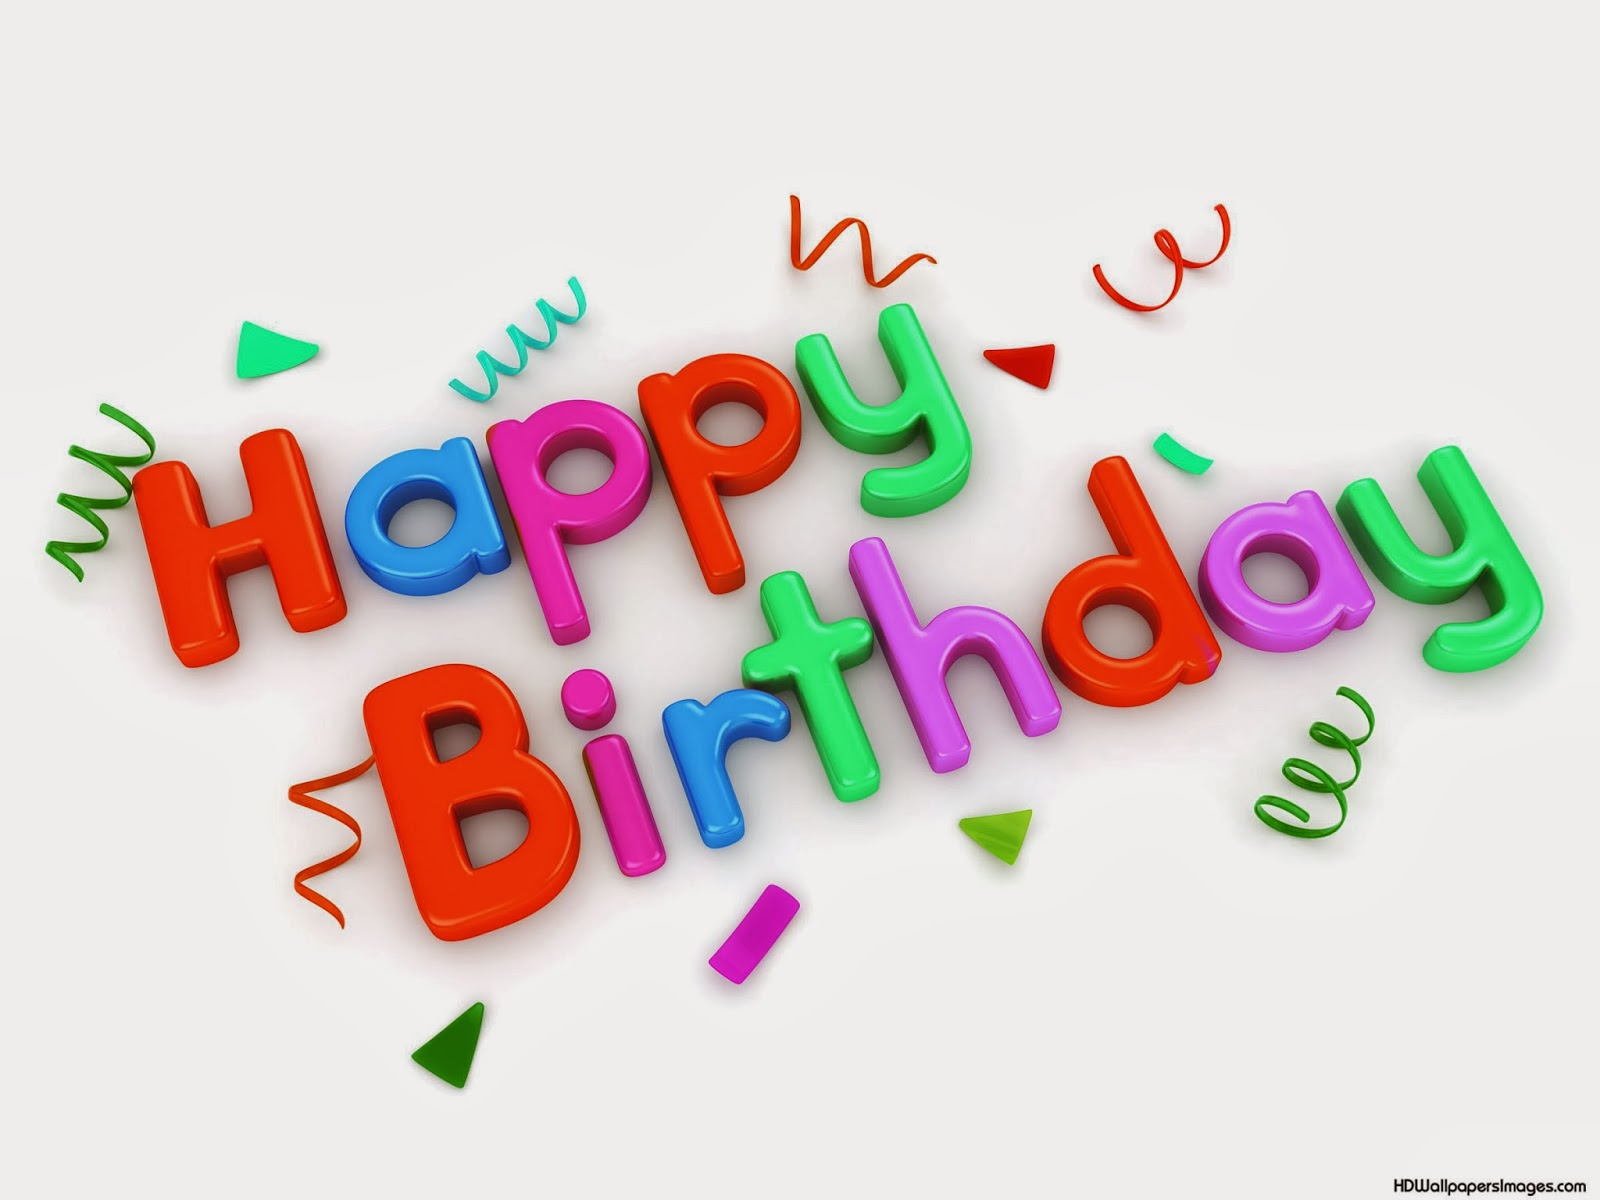 Birthday Wallpaper Gana Happy Birthday Wishes Images And Pictures | Poetry About